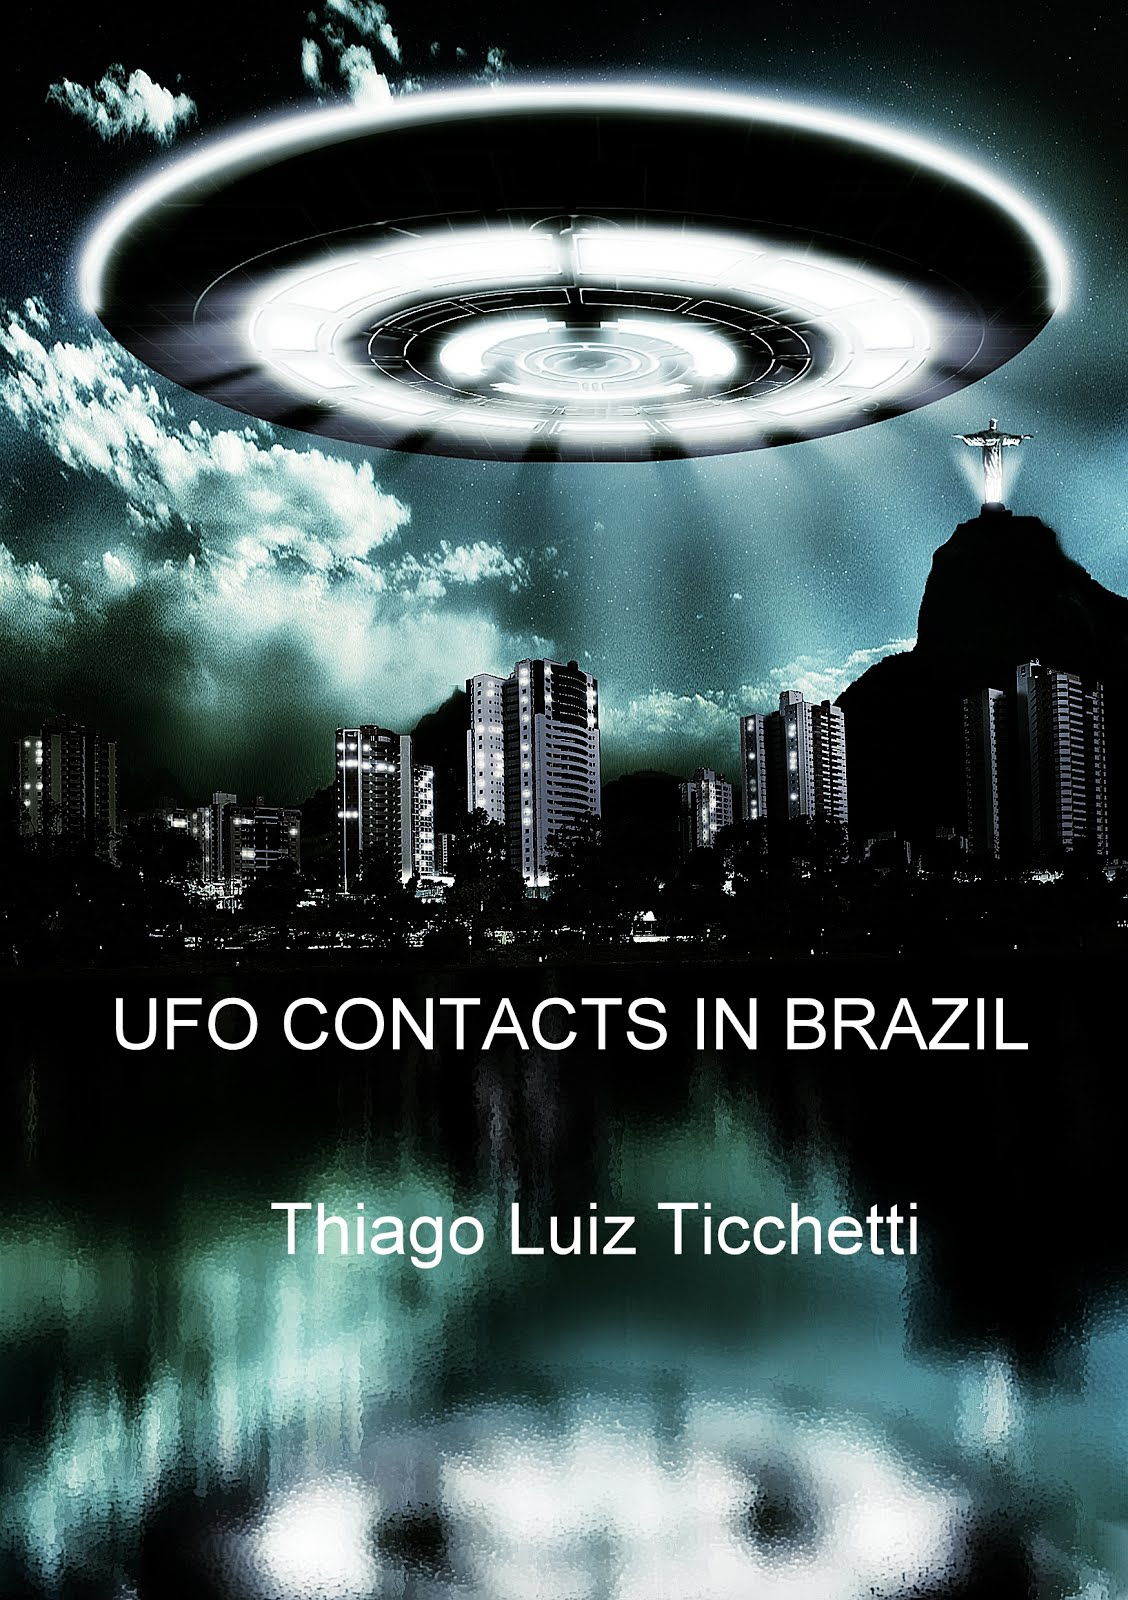 UFO CONTACTS IN BRAZIL